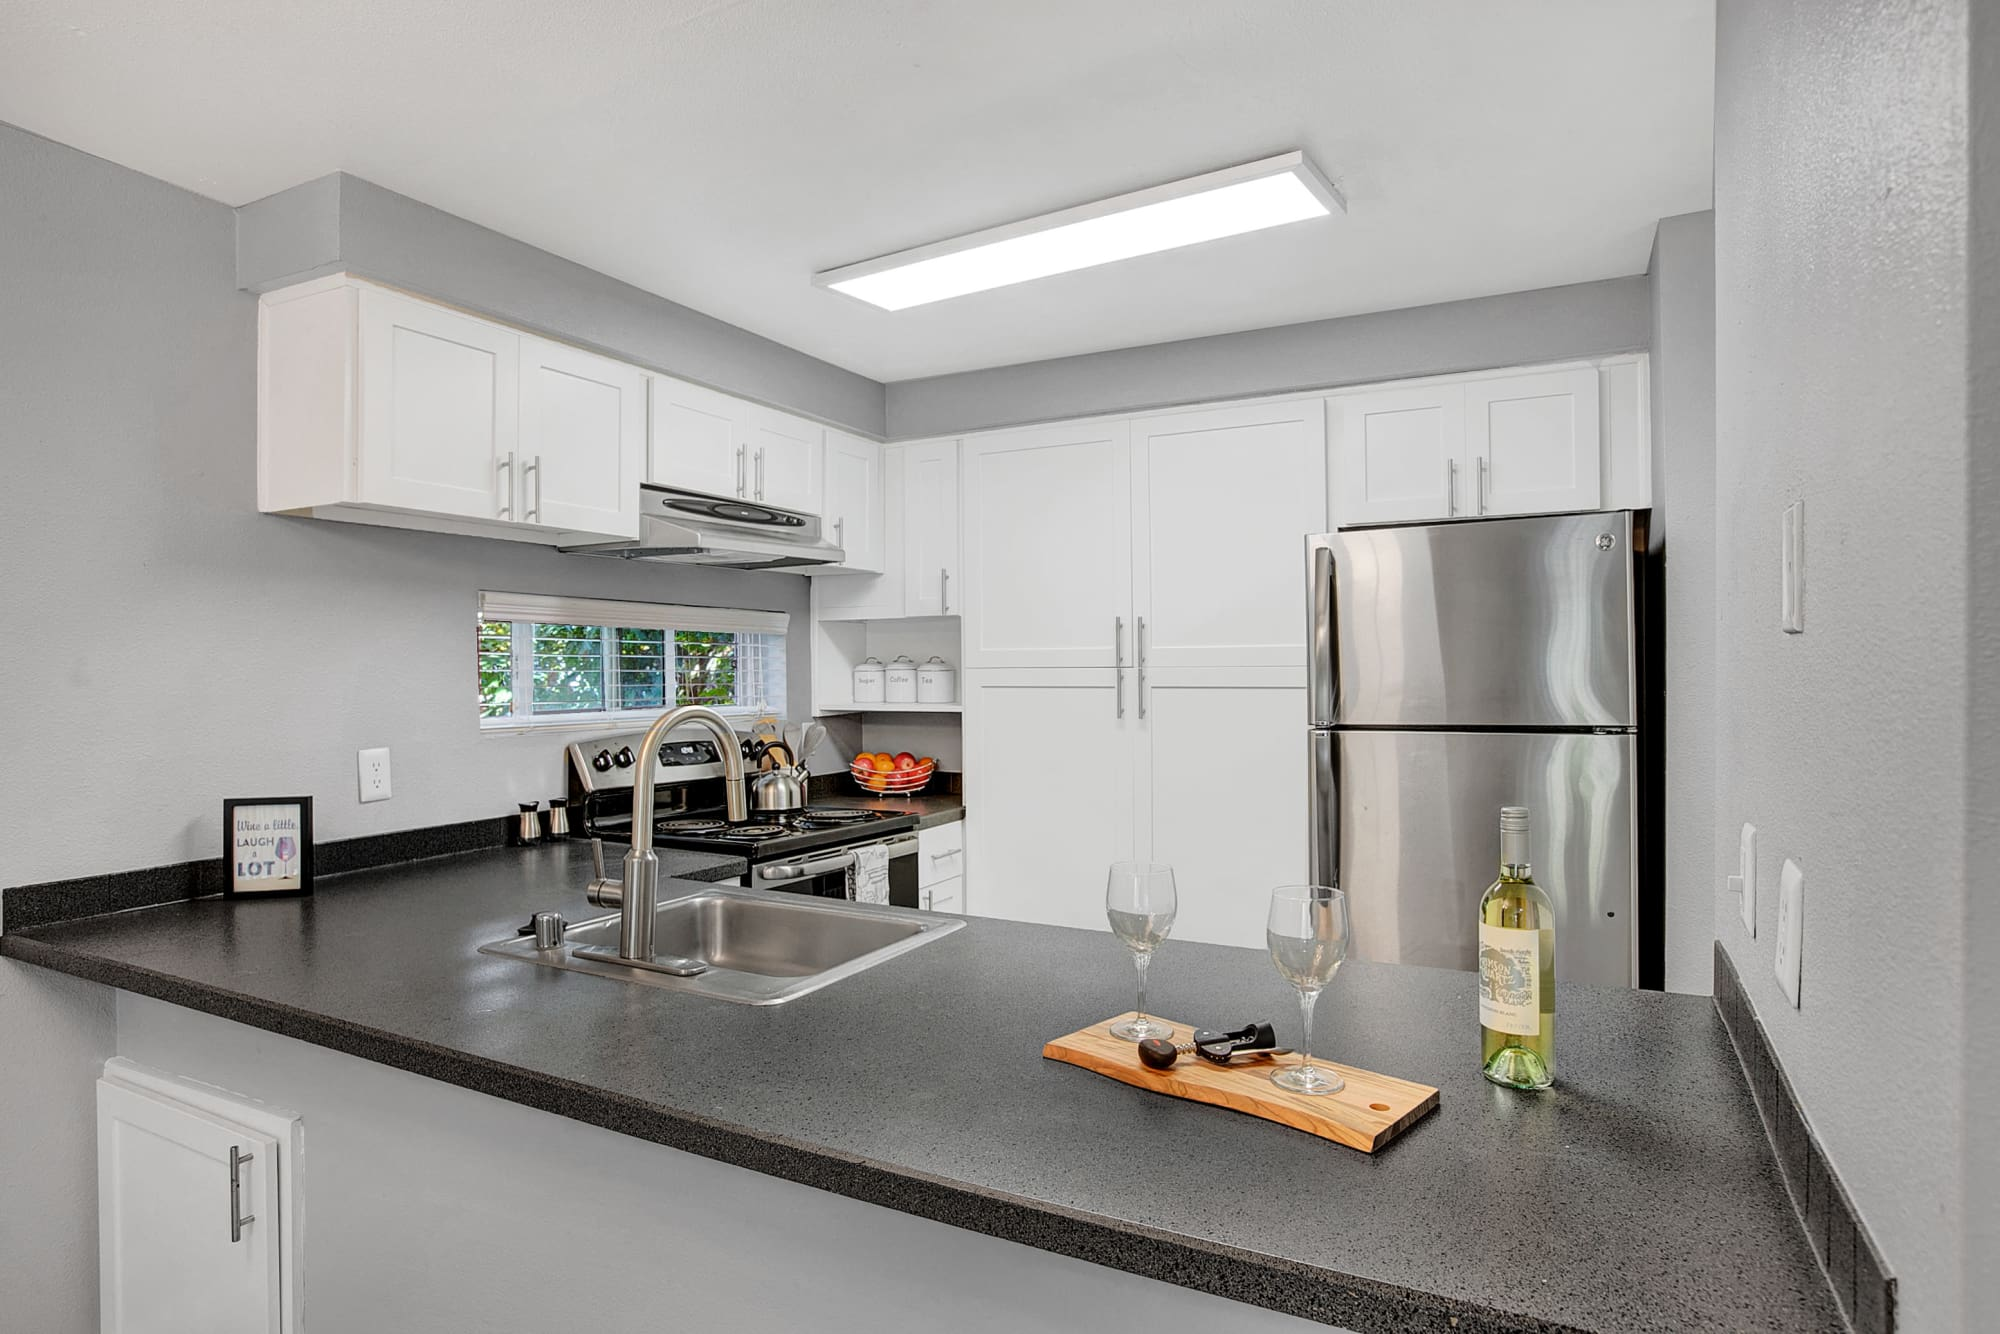 Kitchen with a breakfast bar at Park South Apartments in Seattle, Washington